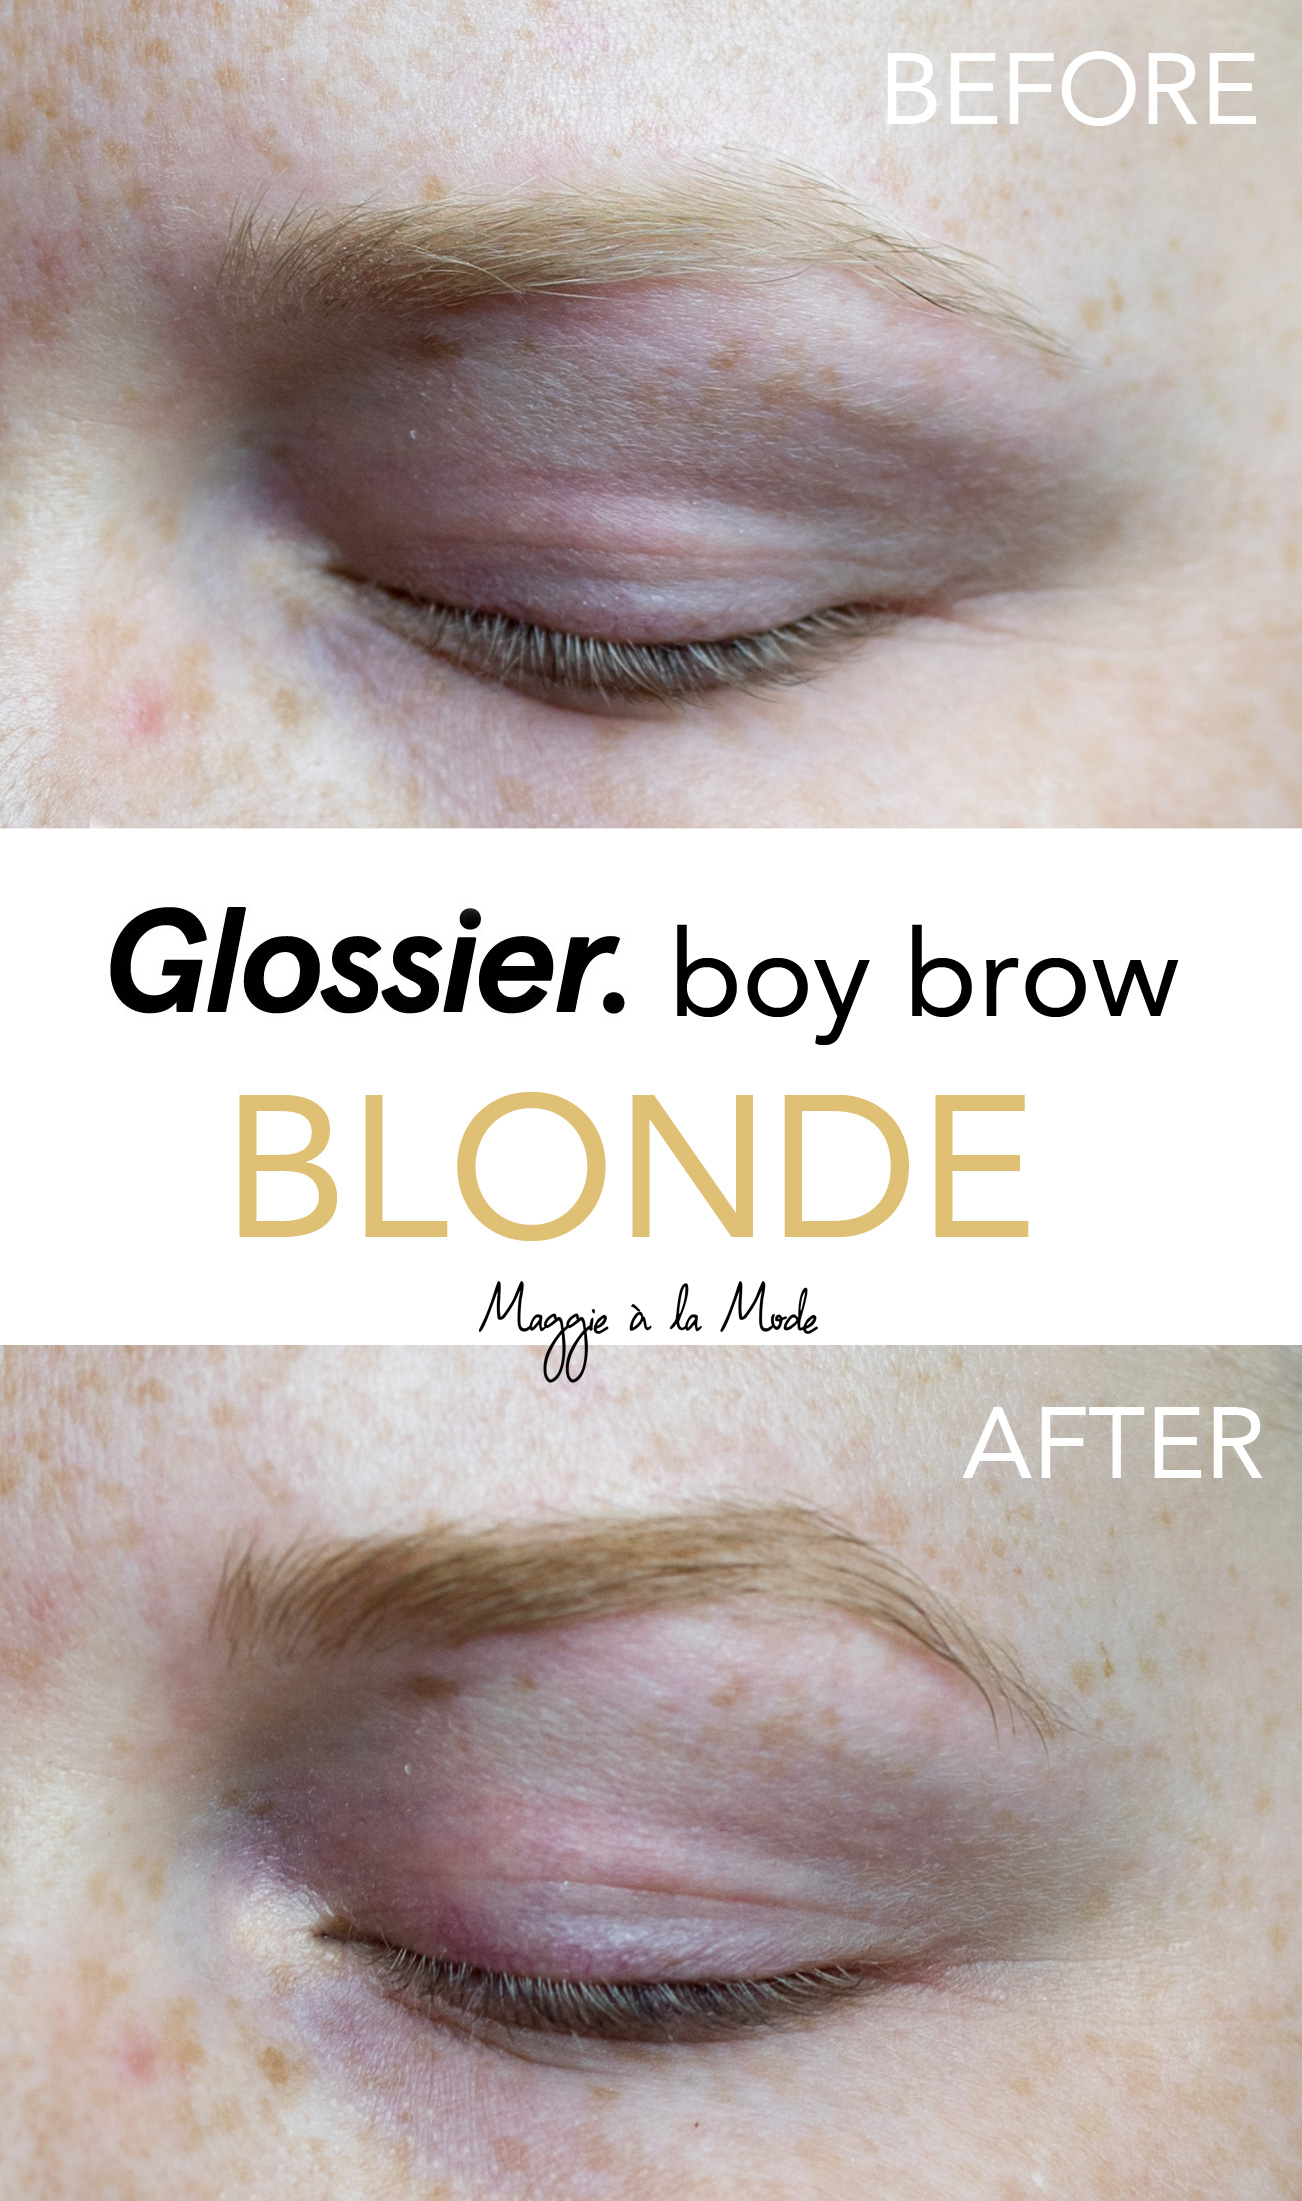 Maggie-a-la-Mode---Glossier-Boy-Brow-Blonde-Before-and-After.jpg